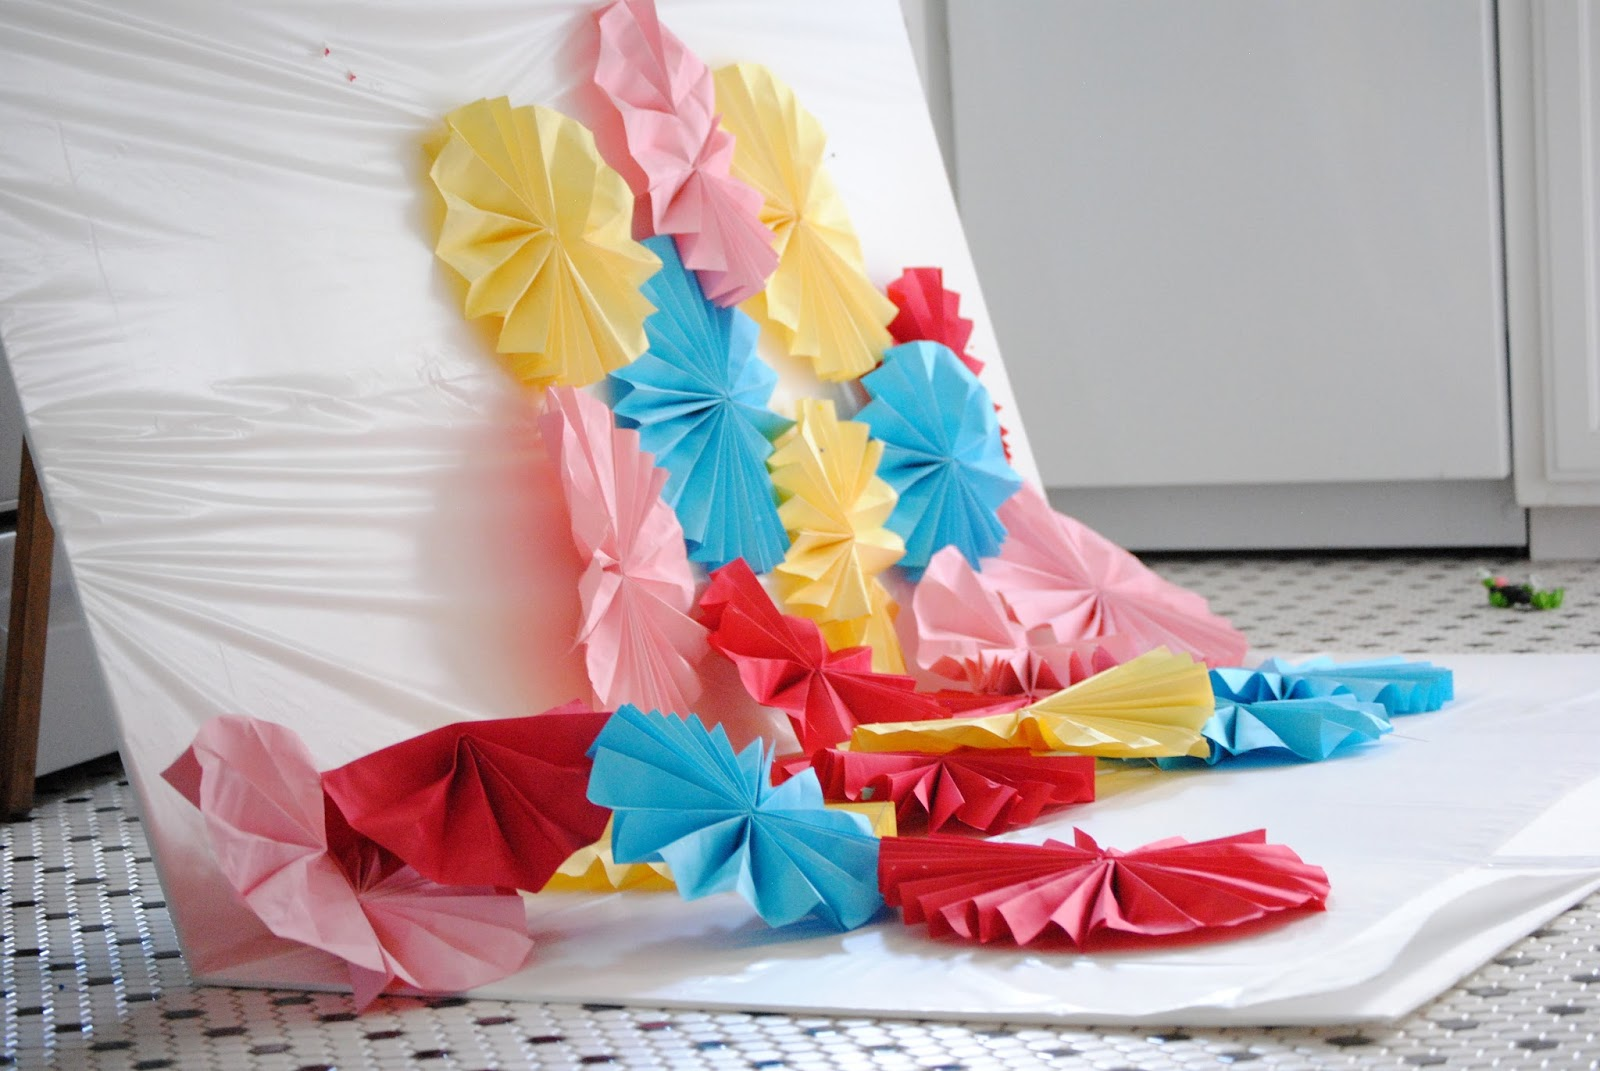 diy: make a paper fan photo backdrop